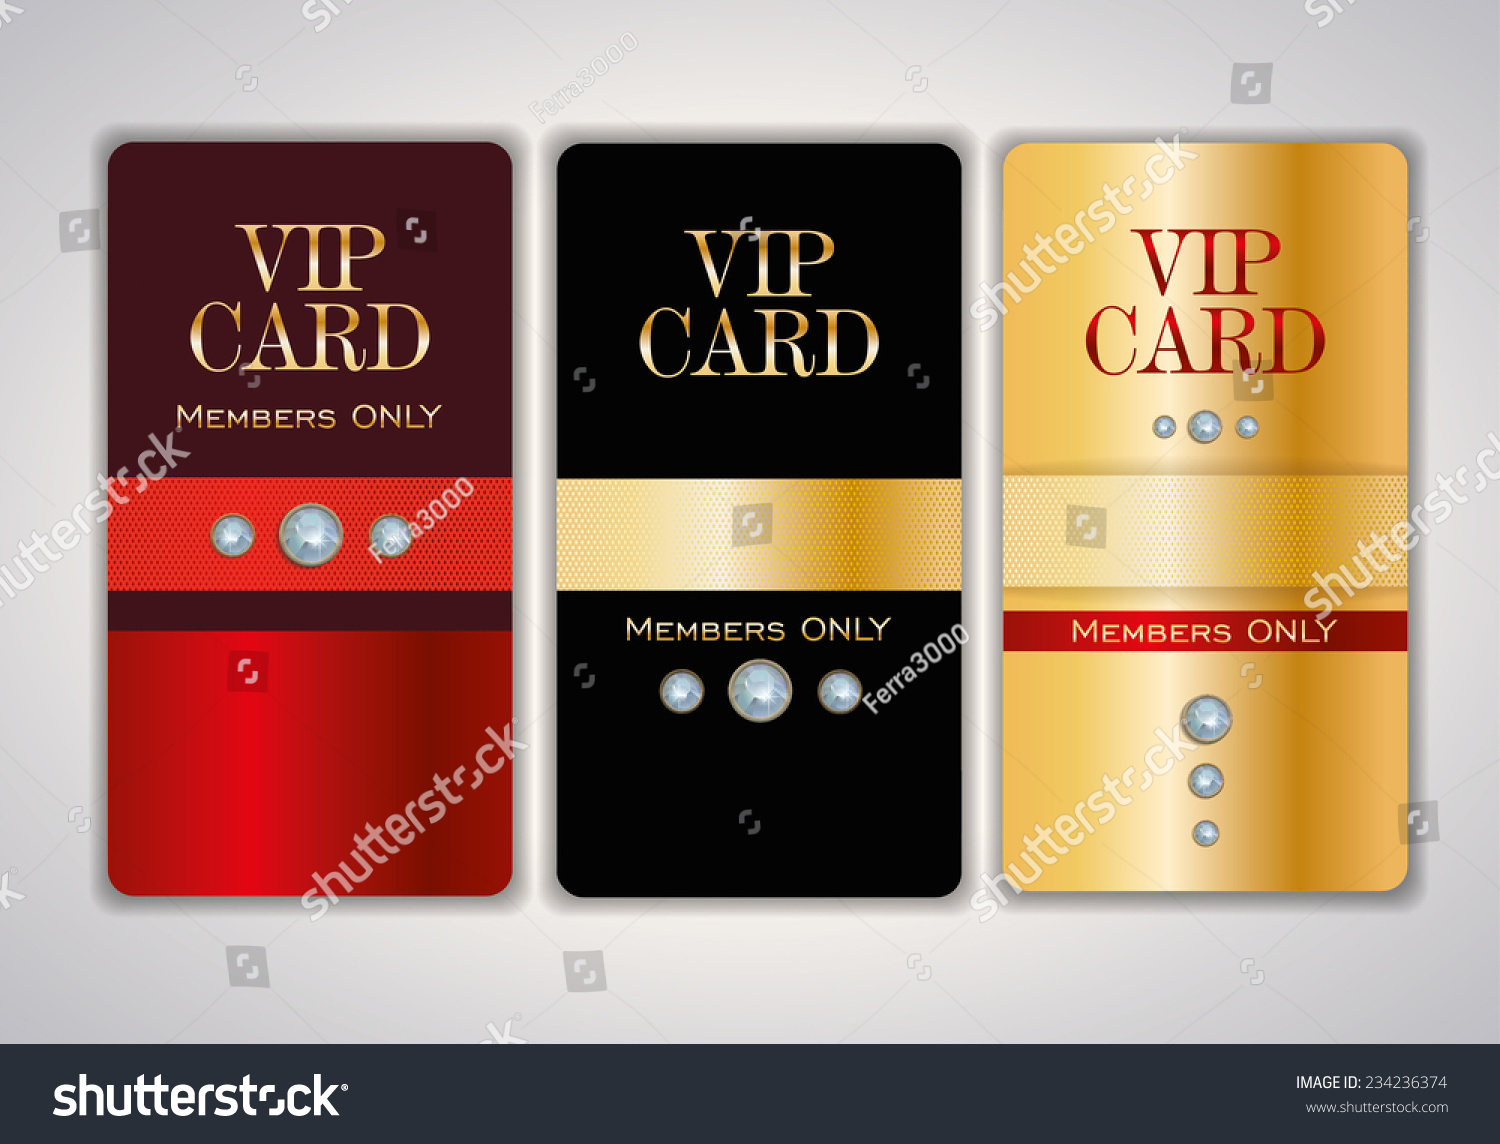 Vip Club Card Design Templates Crystals Stock Vector 234236374